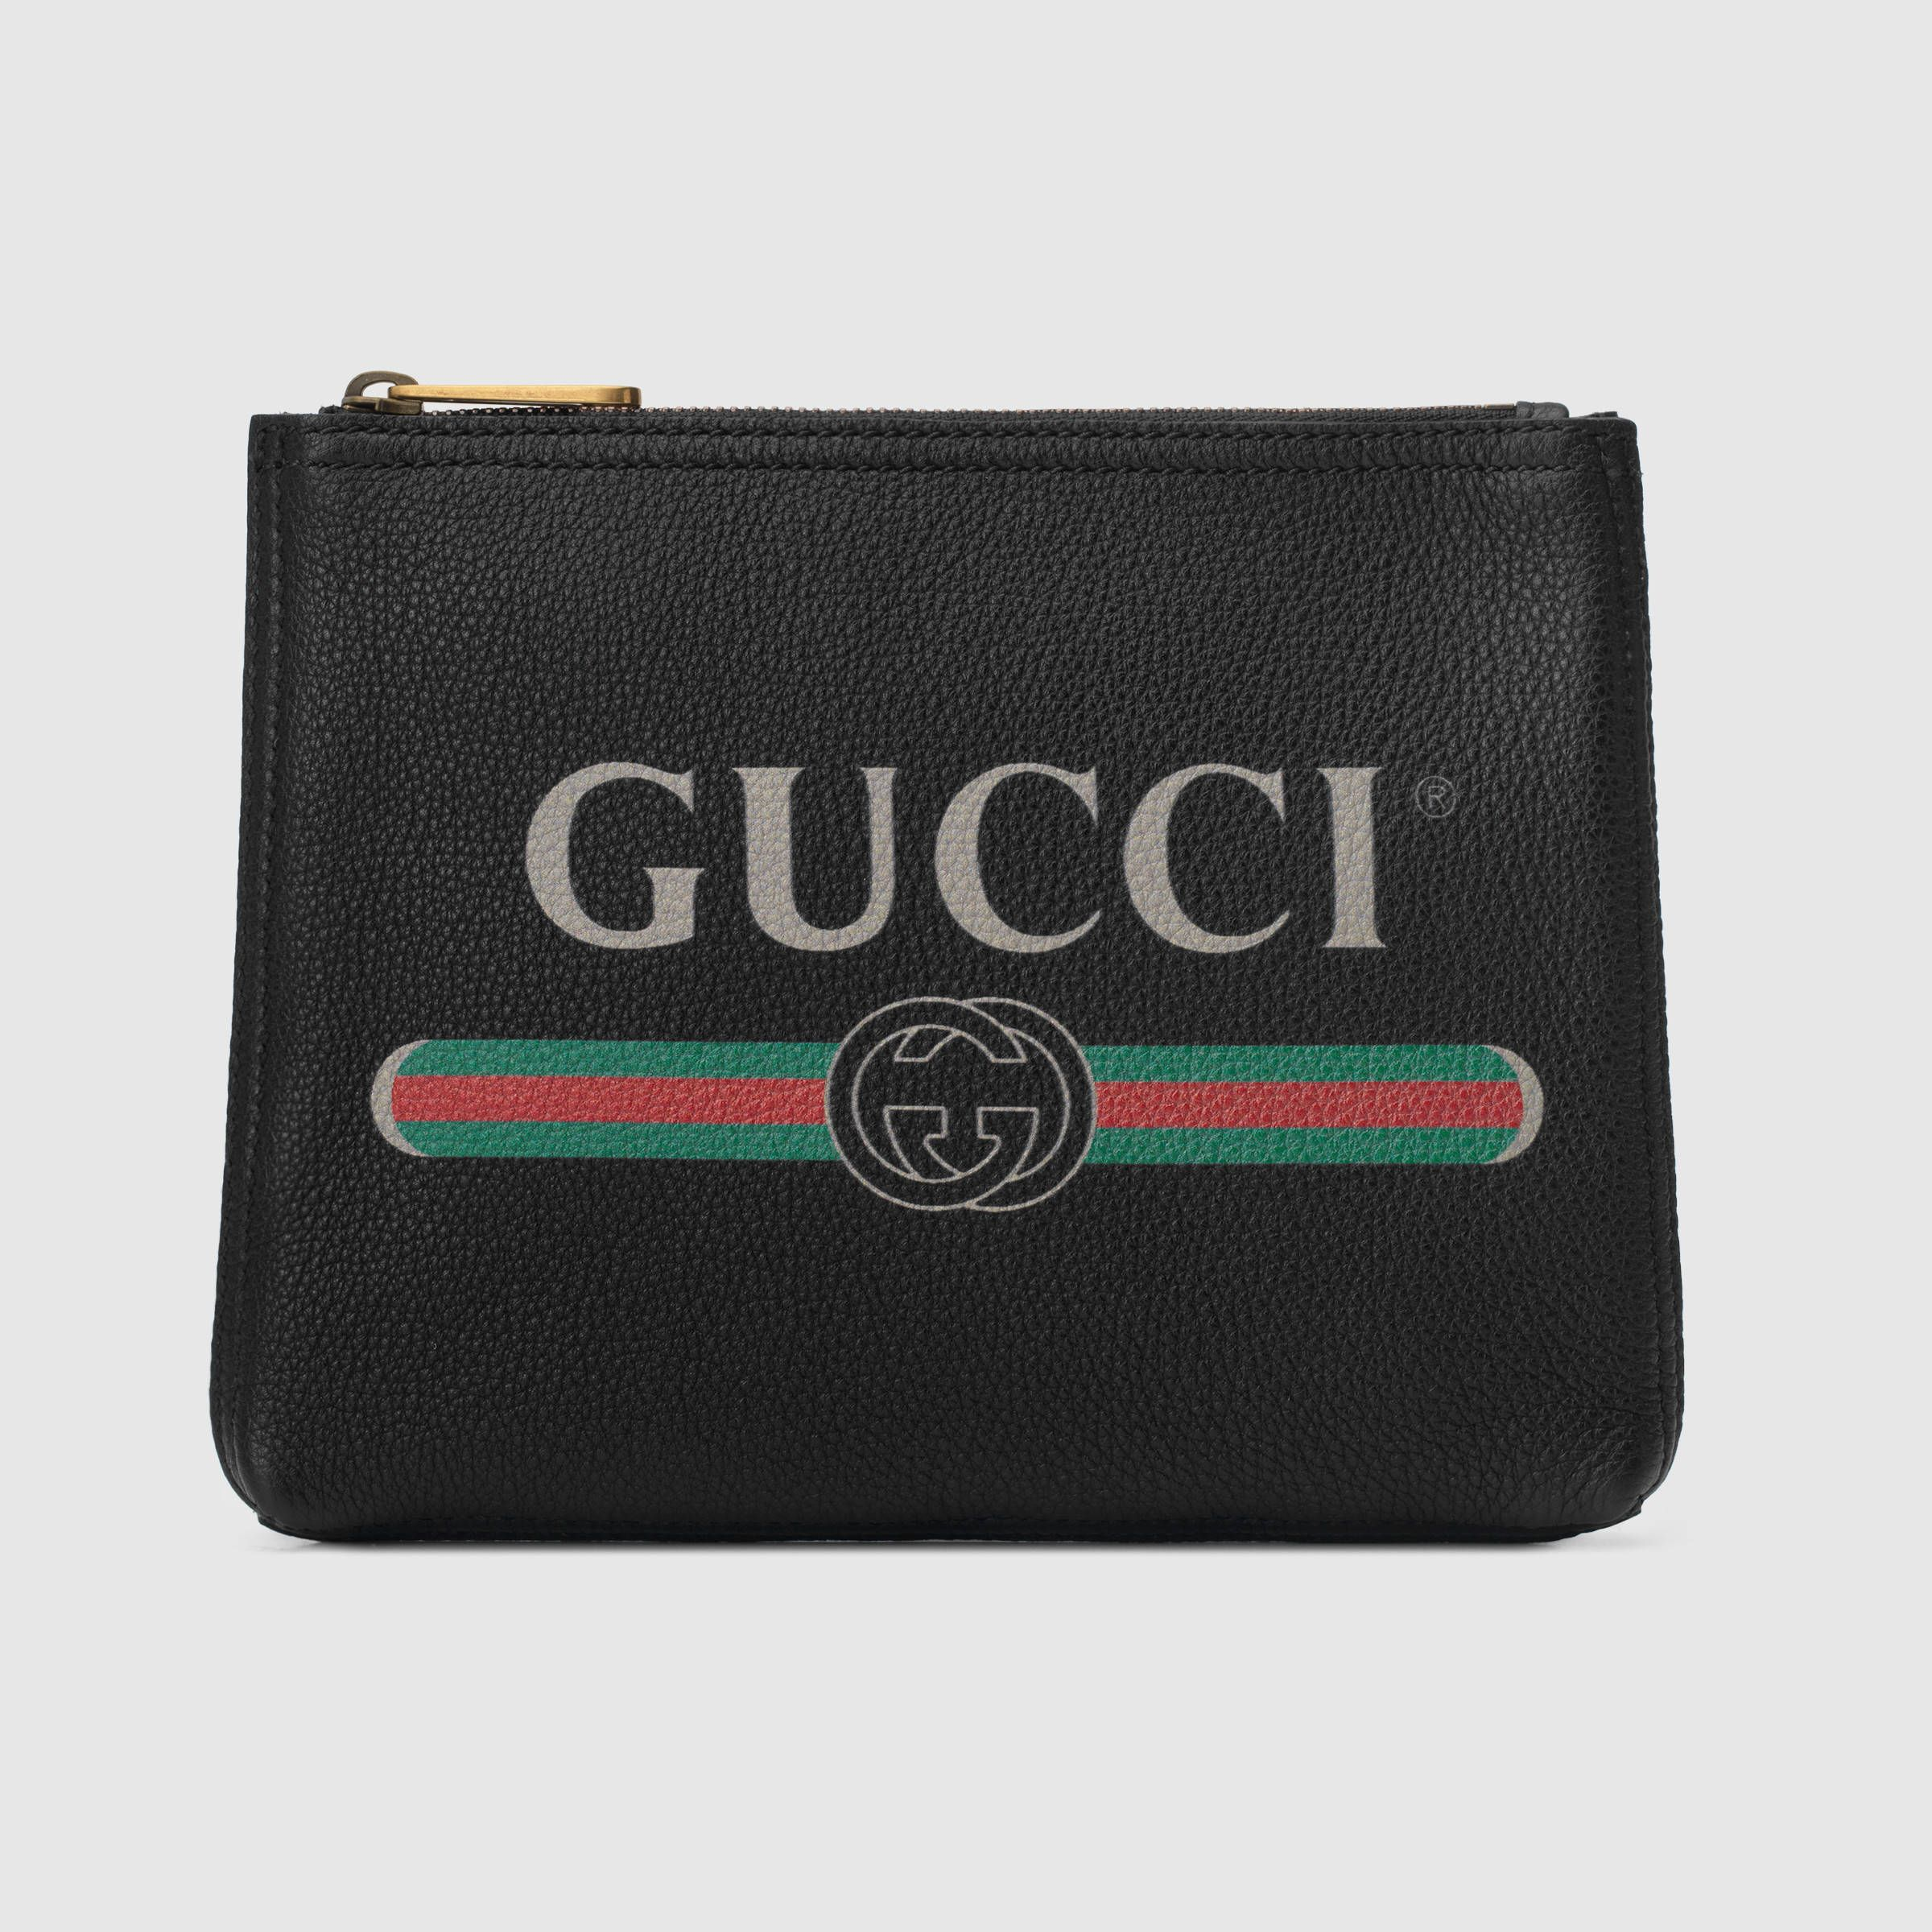 83b65d2d88 Gucci - Print leather small portfolio | SMALL LEATHER GOODS/TRAVEL ...